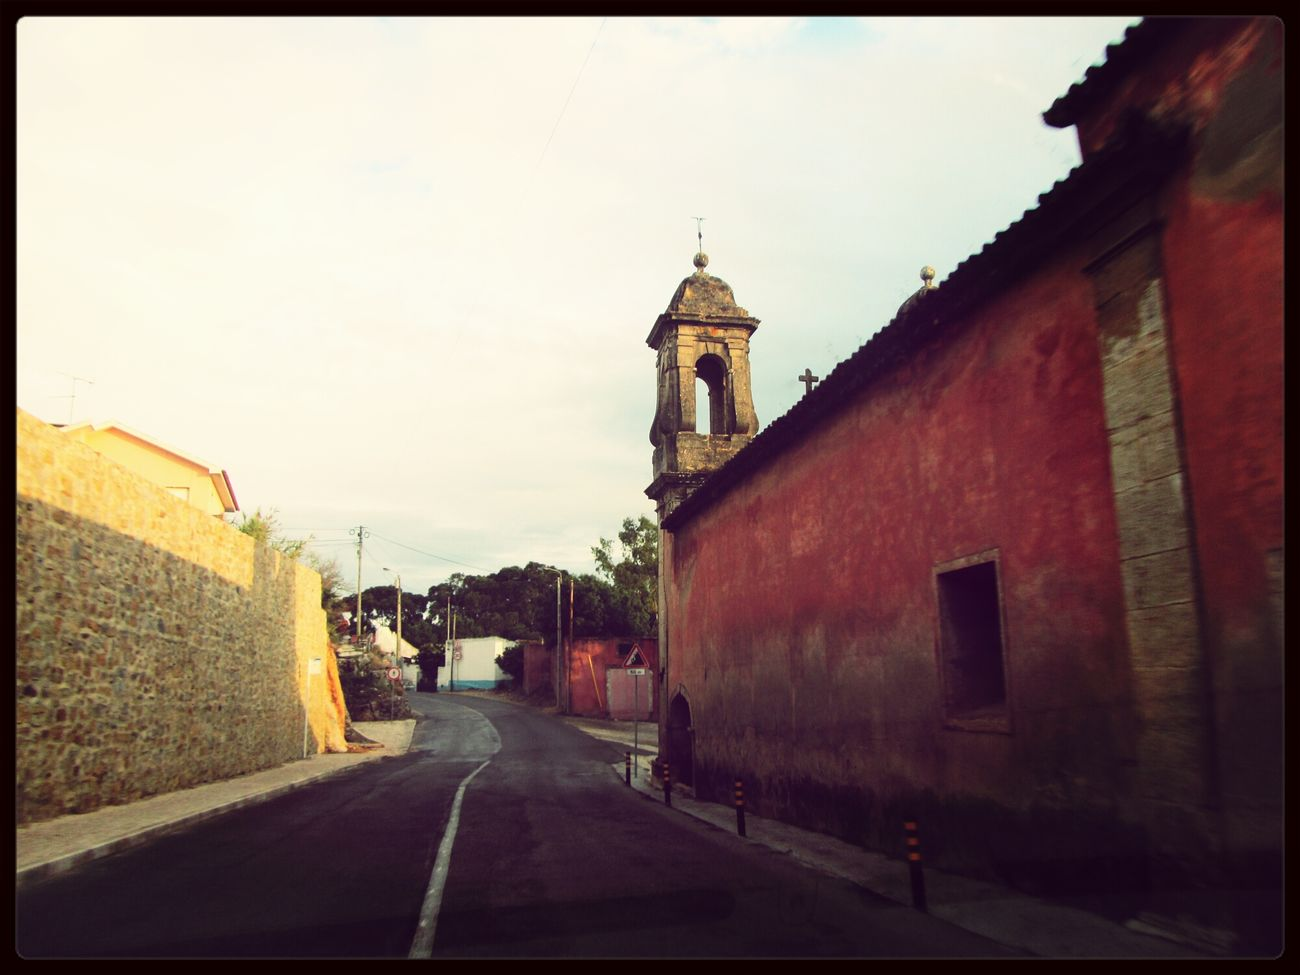 A caminho de casa... :-) Hanging Out Walking Around Taking Photos Driving Home